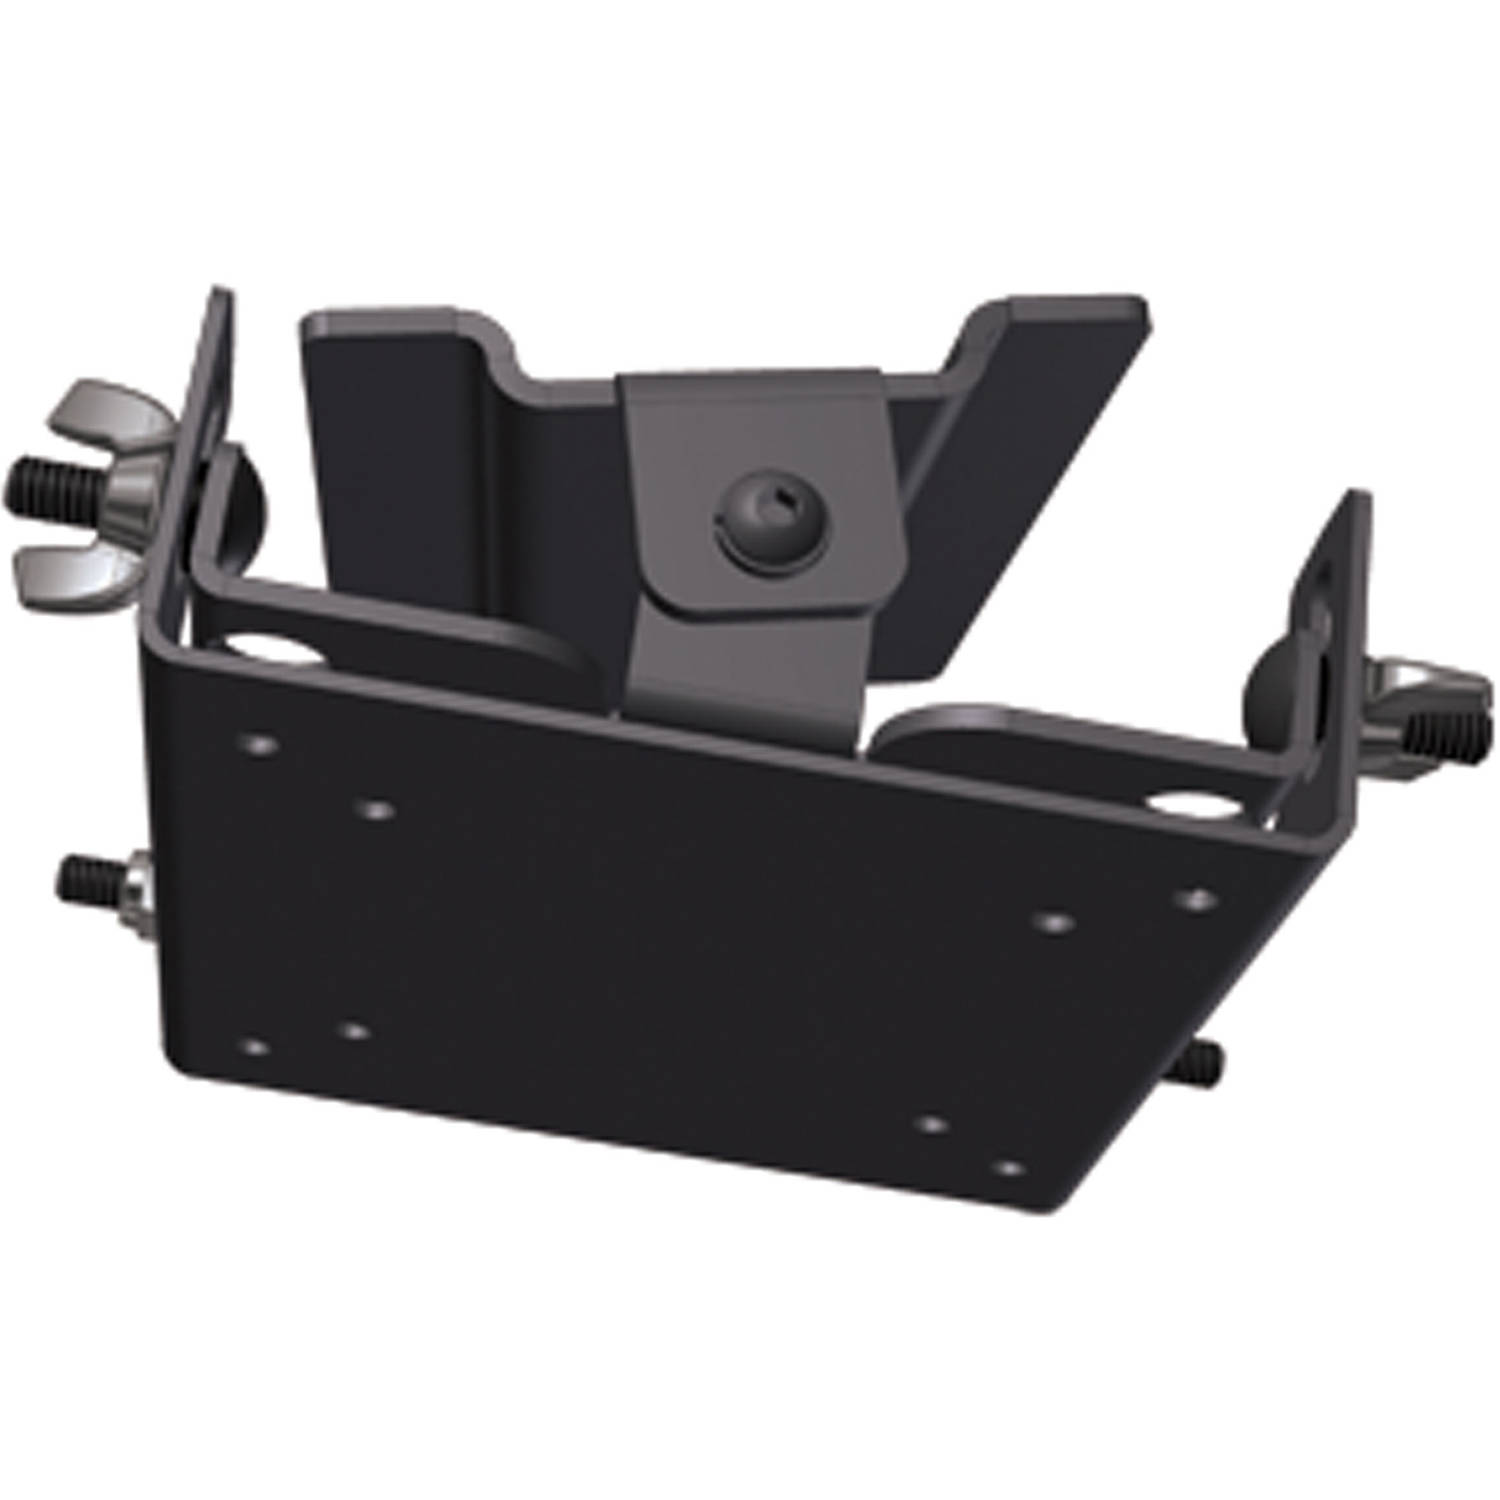 MORryde TV5-002H Portable Wall Mount